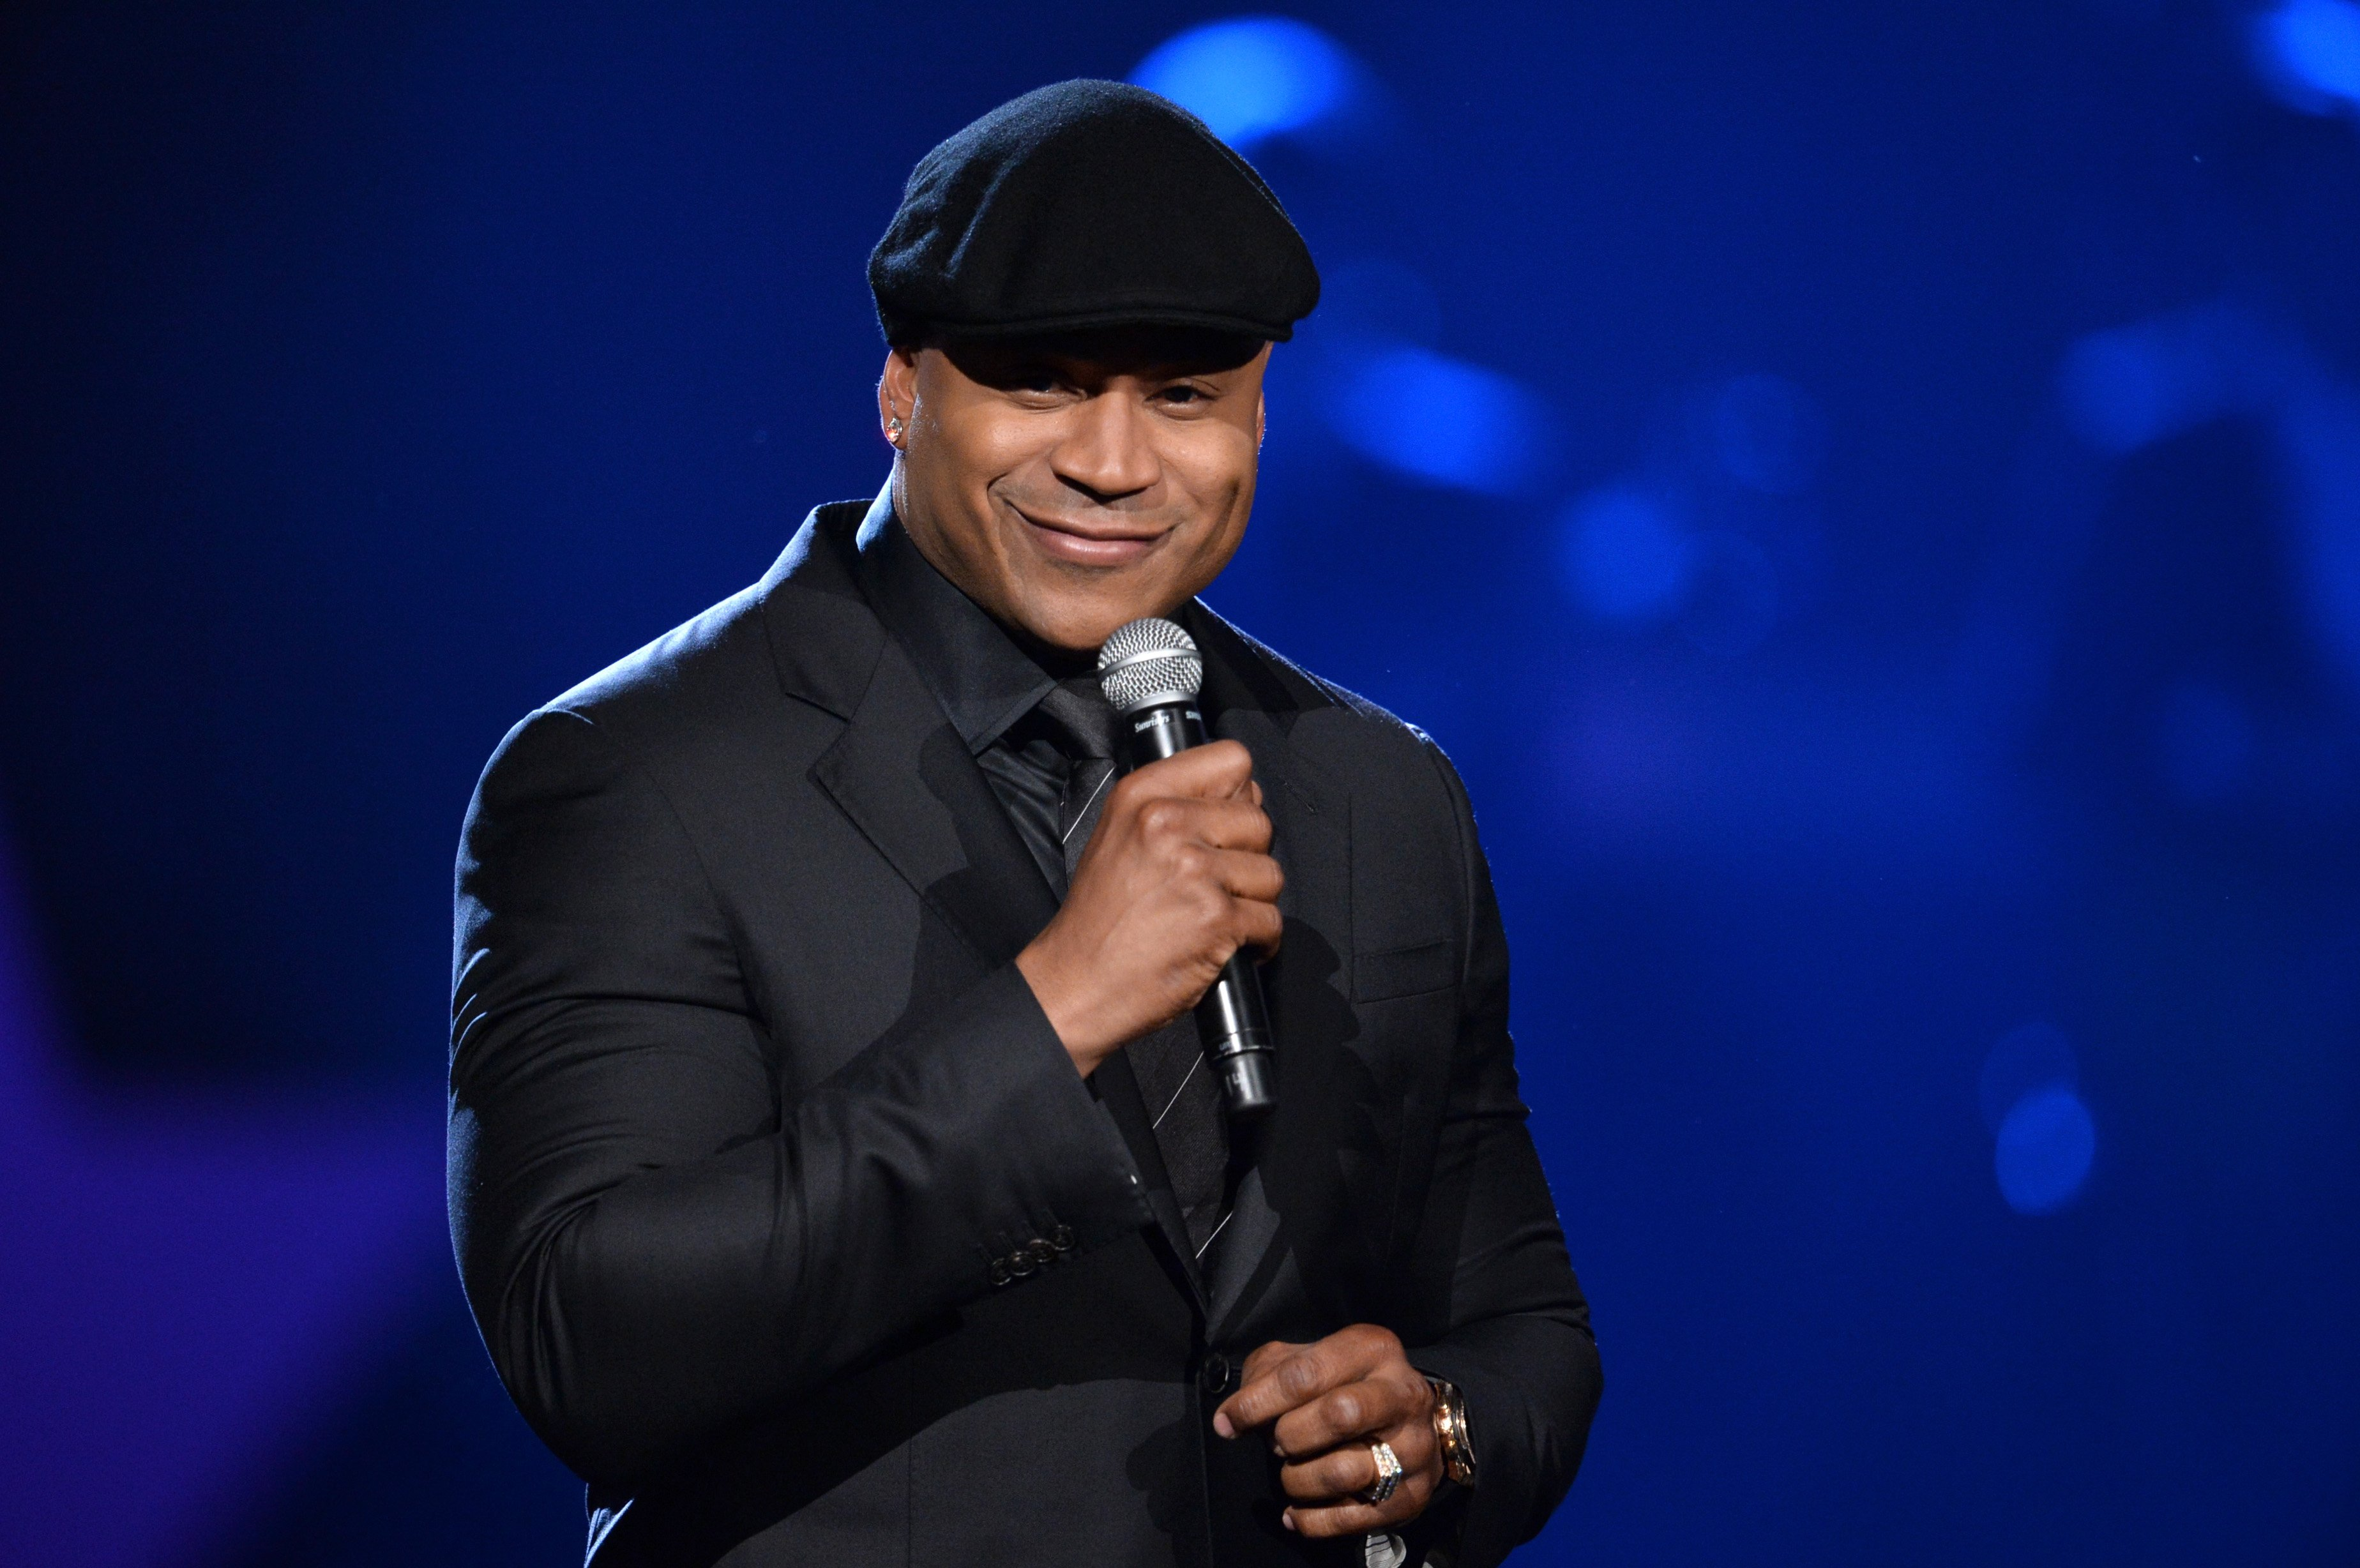 """LL Cool J speaks at """"A Grammy Salute to the Beatles"""" at the LA Convention Center on January 27, 2014.